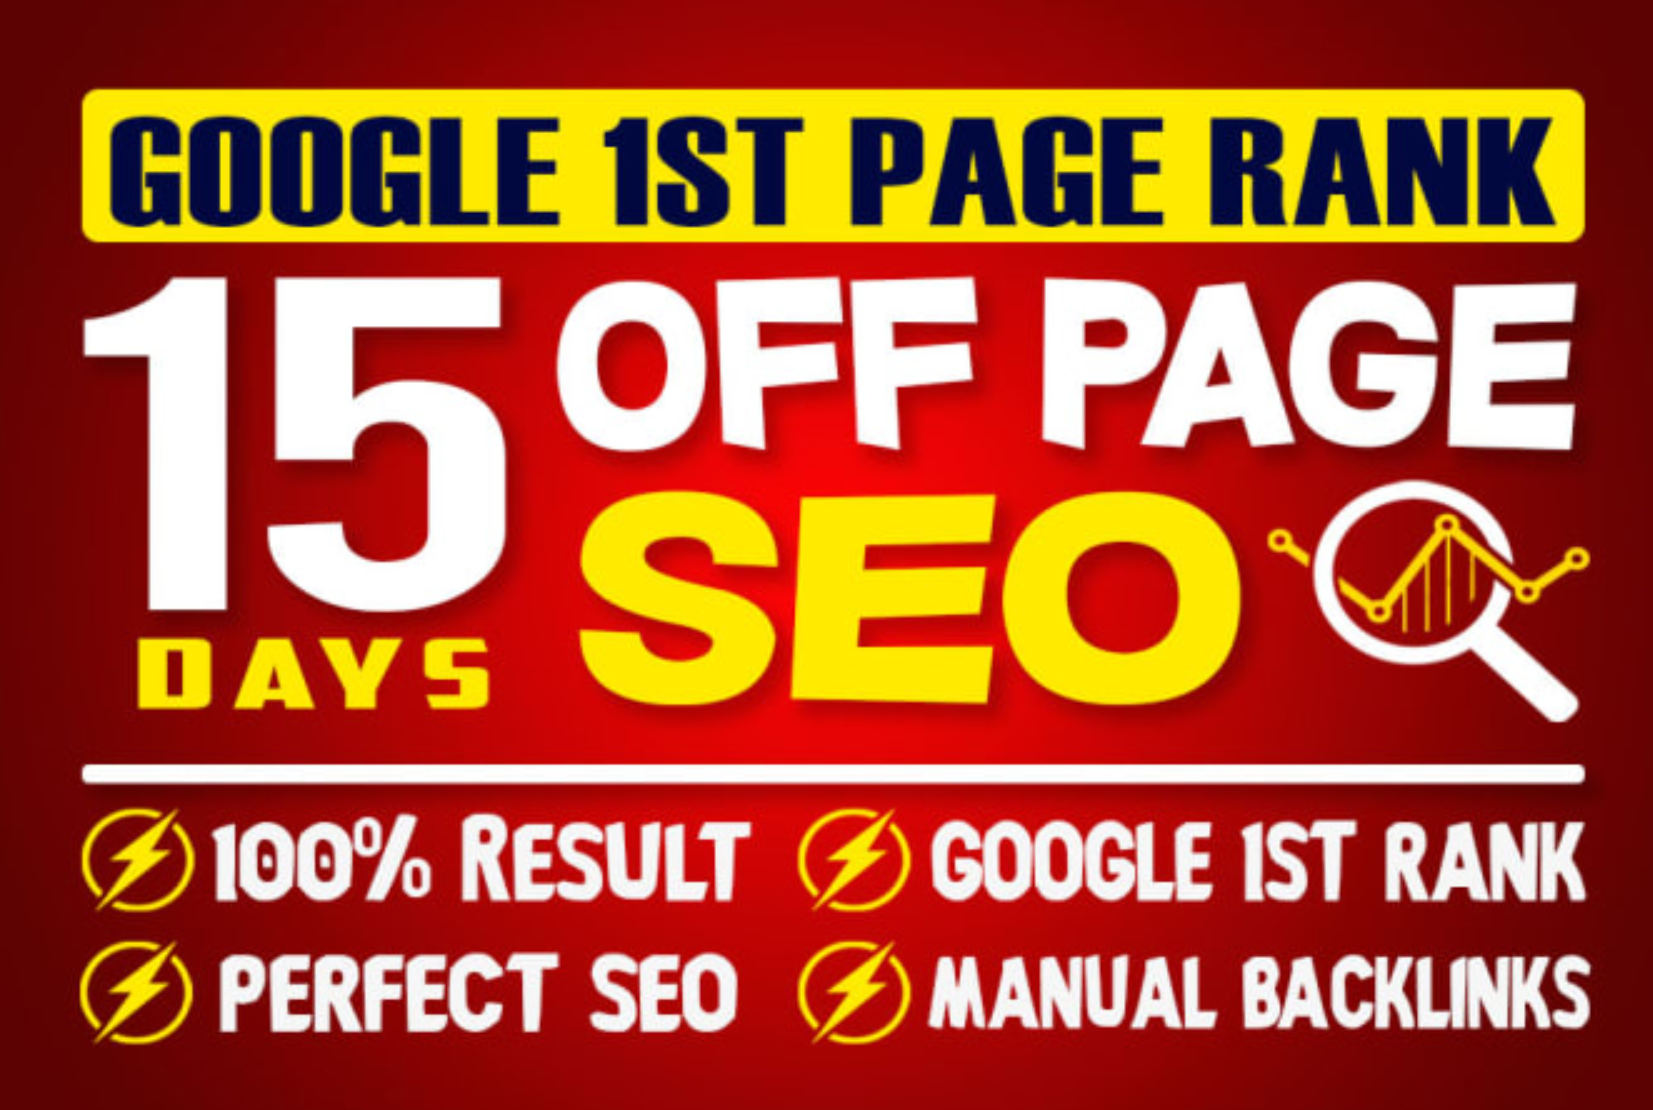 Rank Your Website on Google,  15 Days SEO DripFeed Backlinks Manually